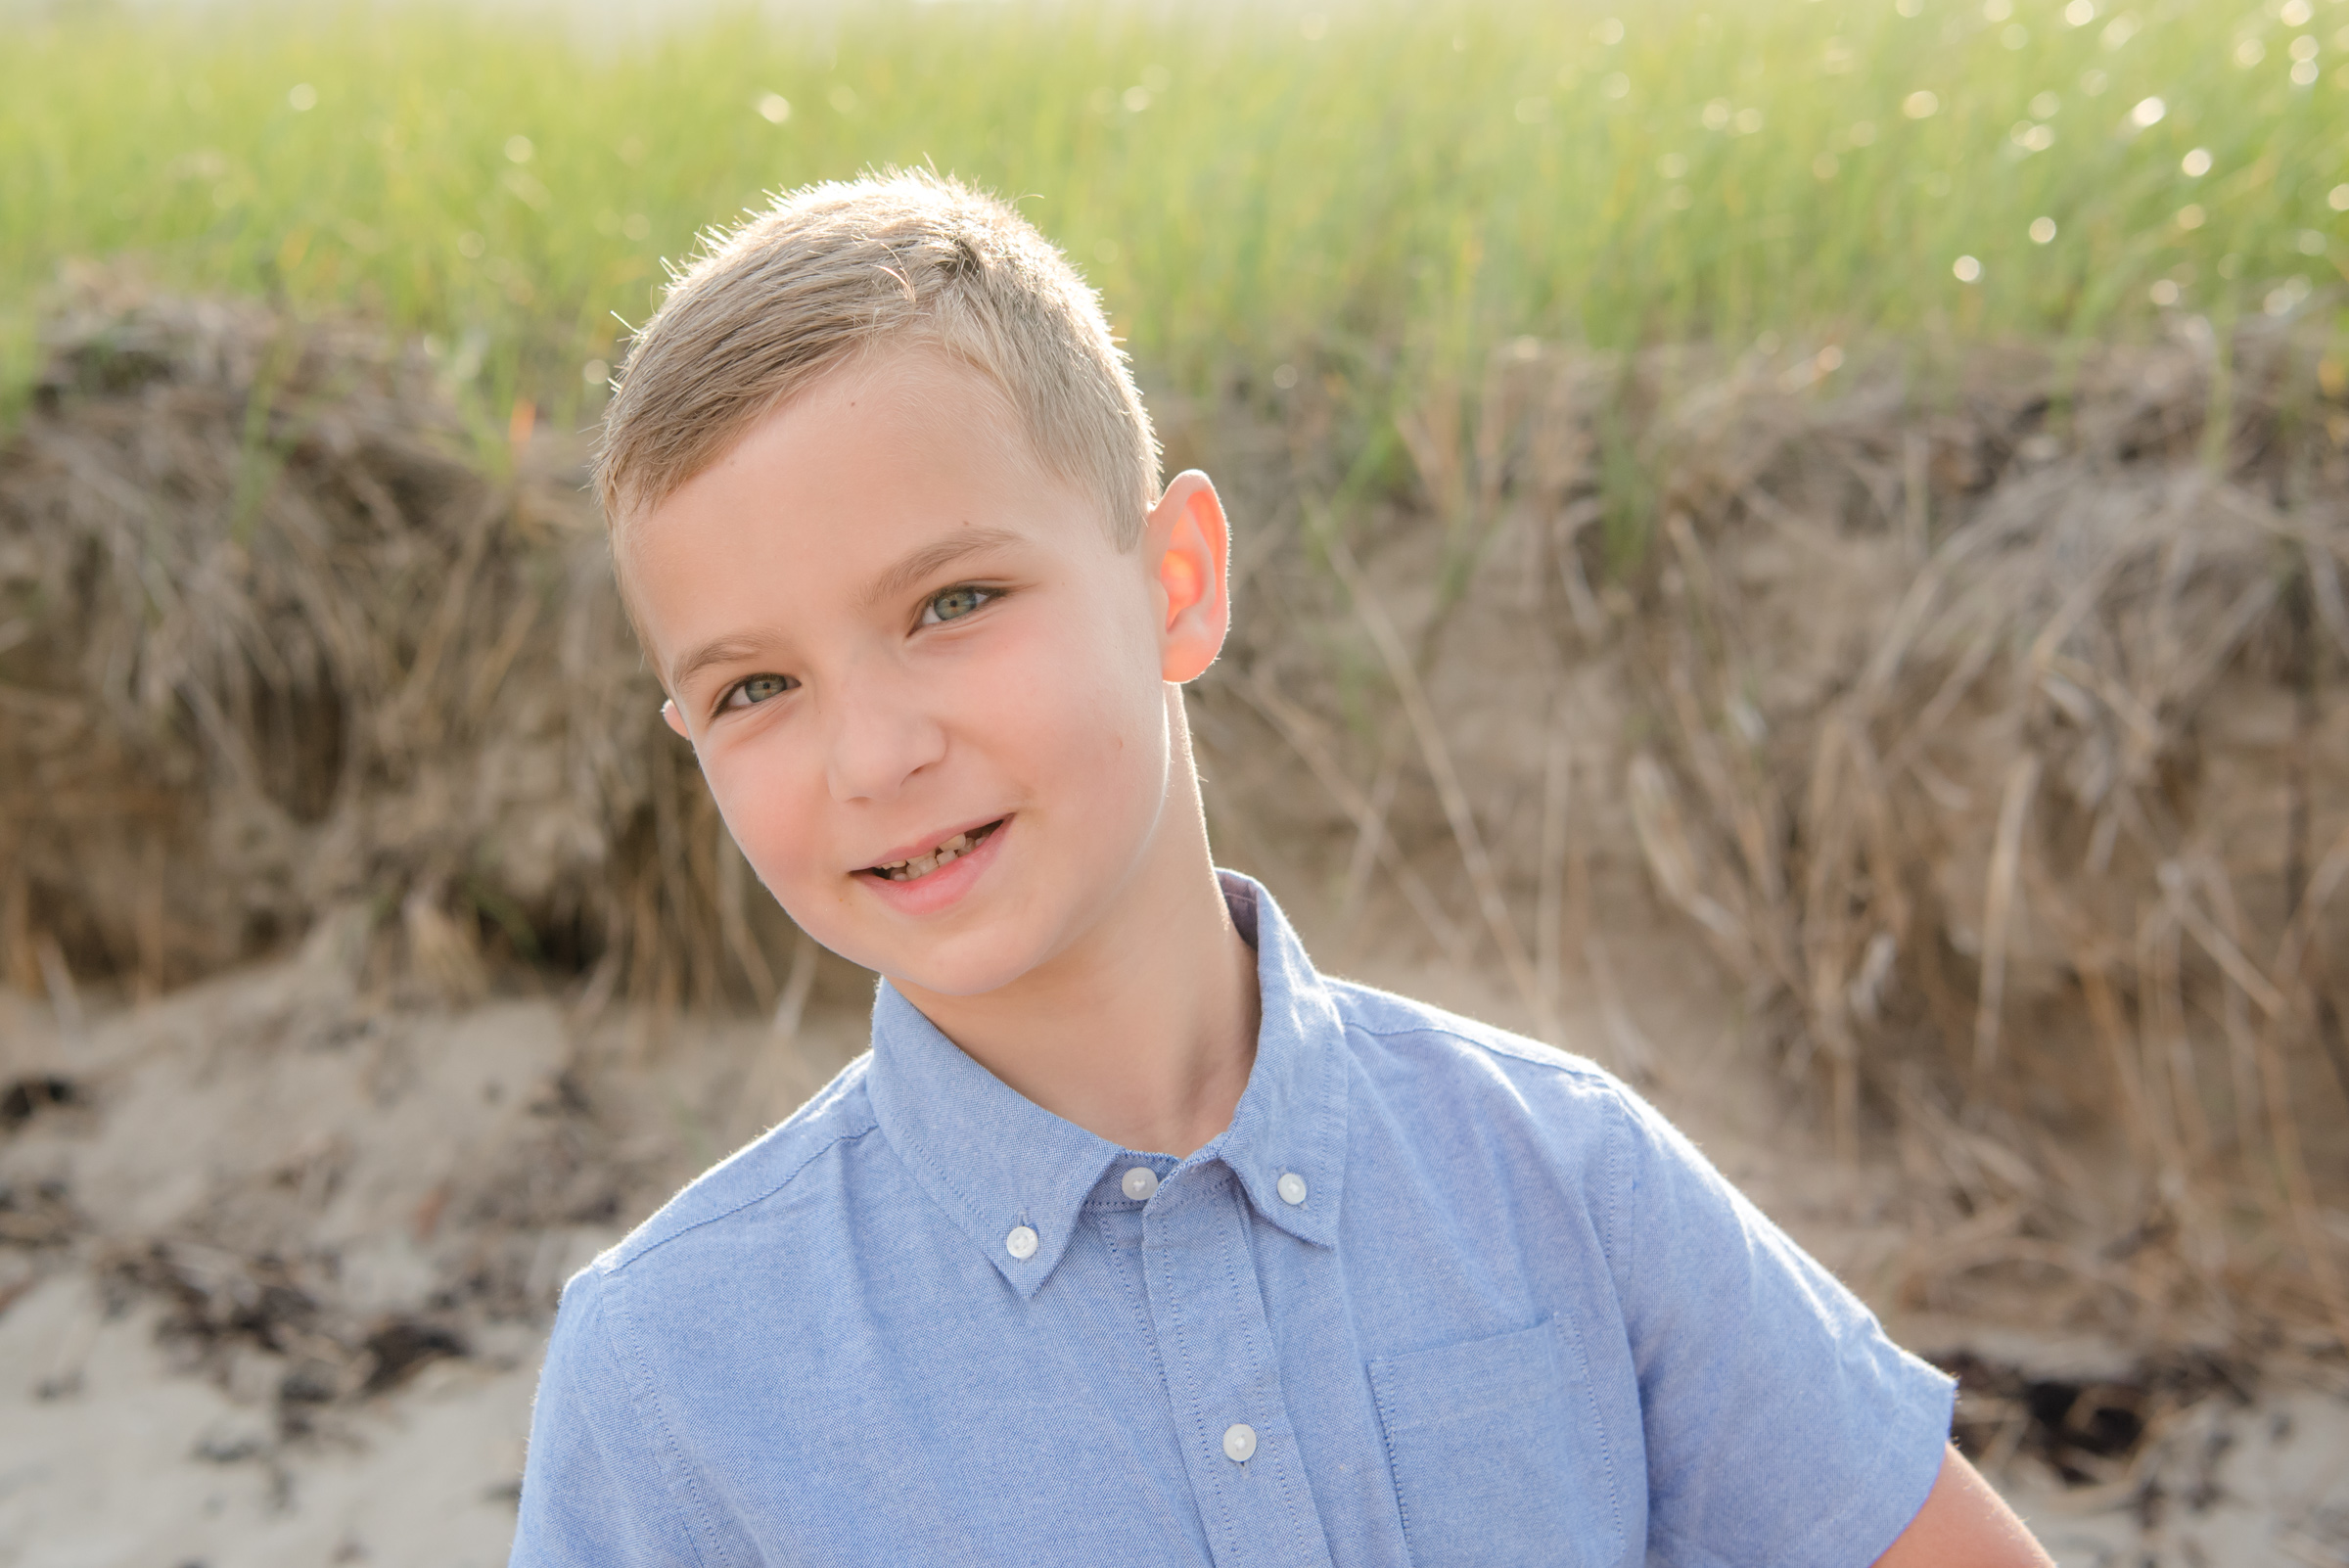 Familybeachsession.Patienceclevelandphotography.kennebunk.maine.b2018-23